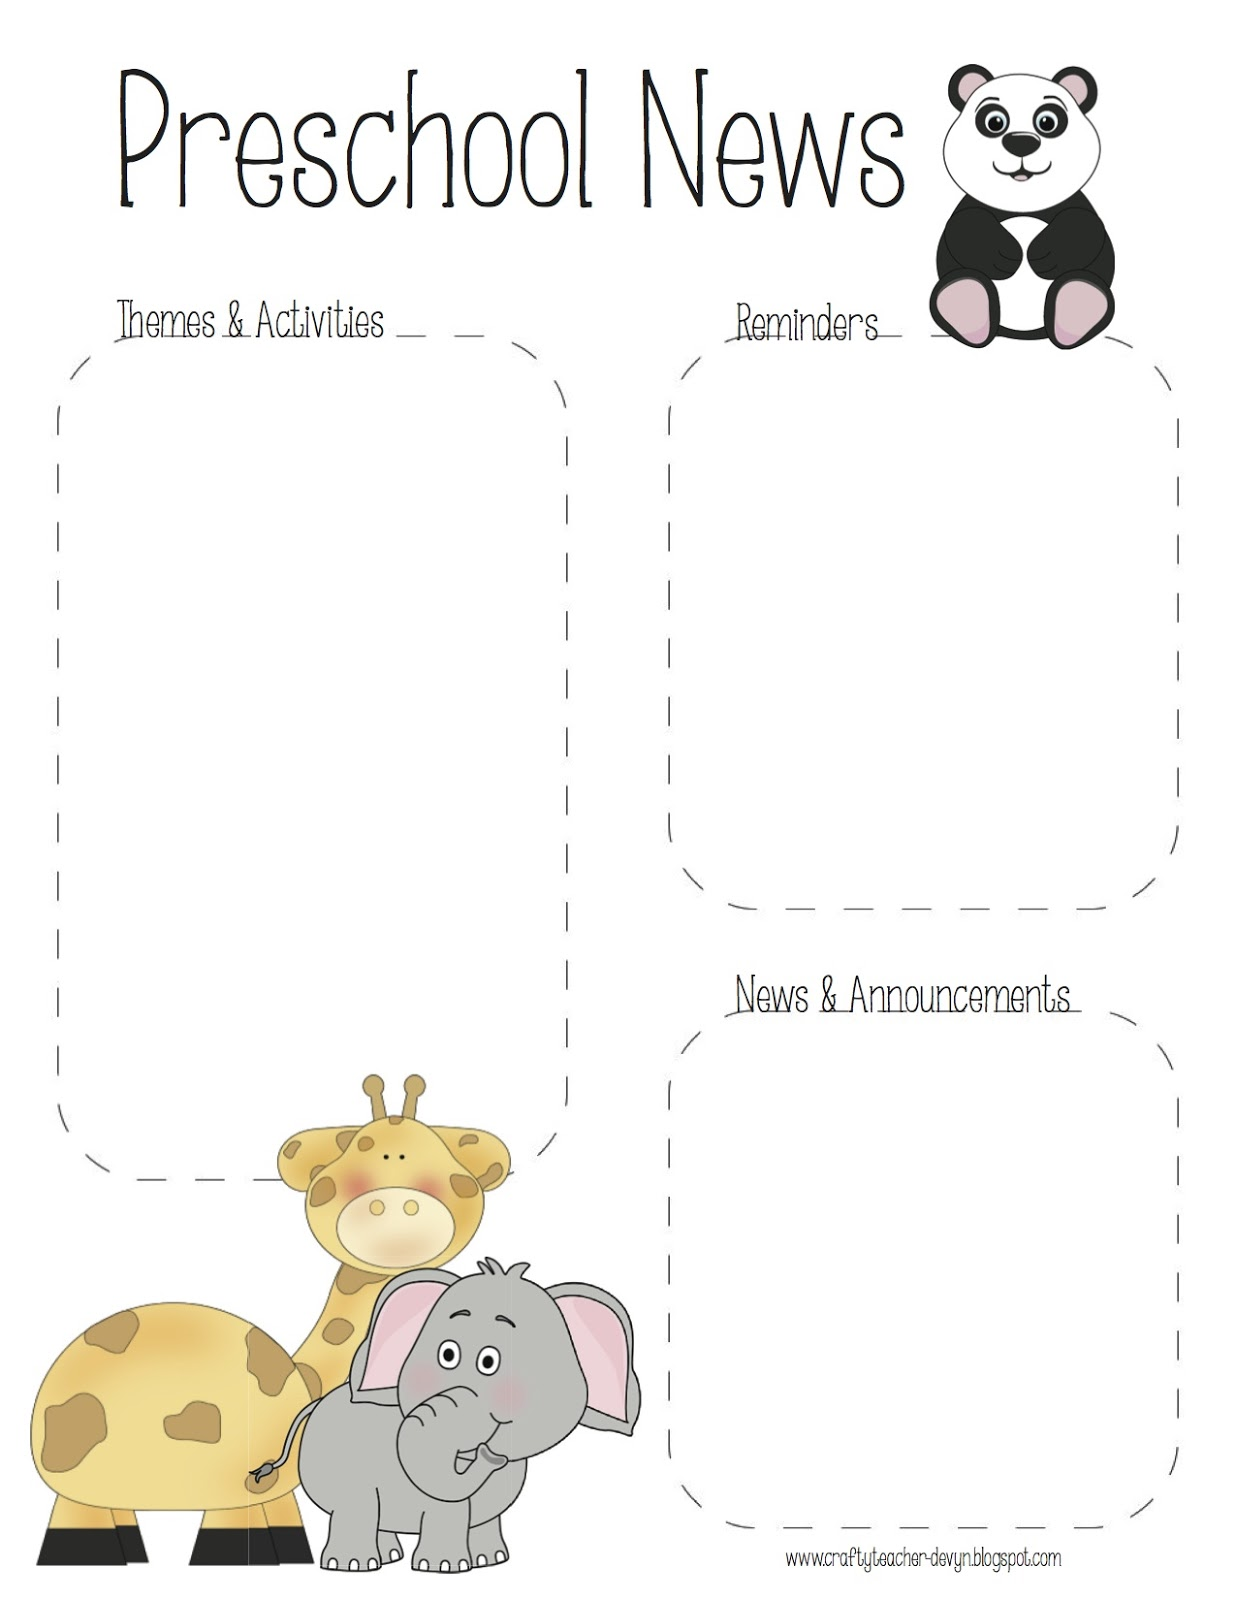 preschool zoo newsletter template the crafty teacher. Black Bedroom Furniture Sets. Home Design Ideas